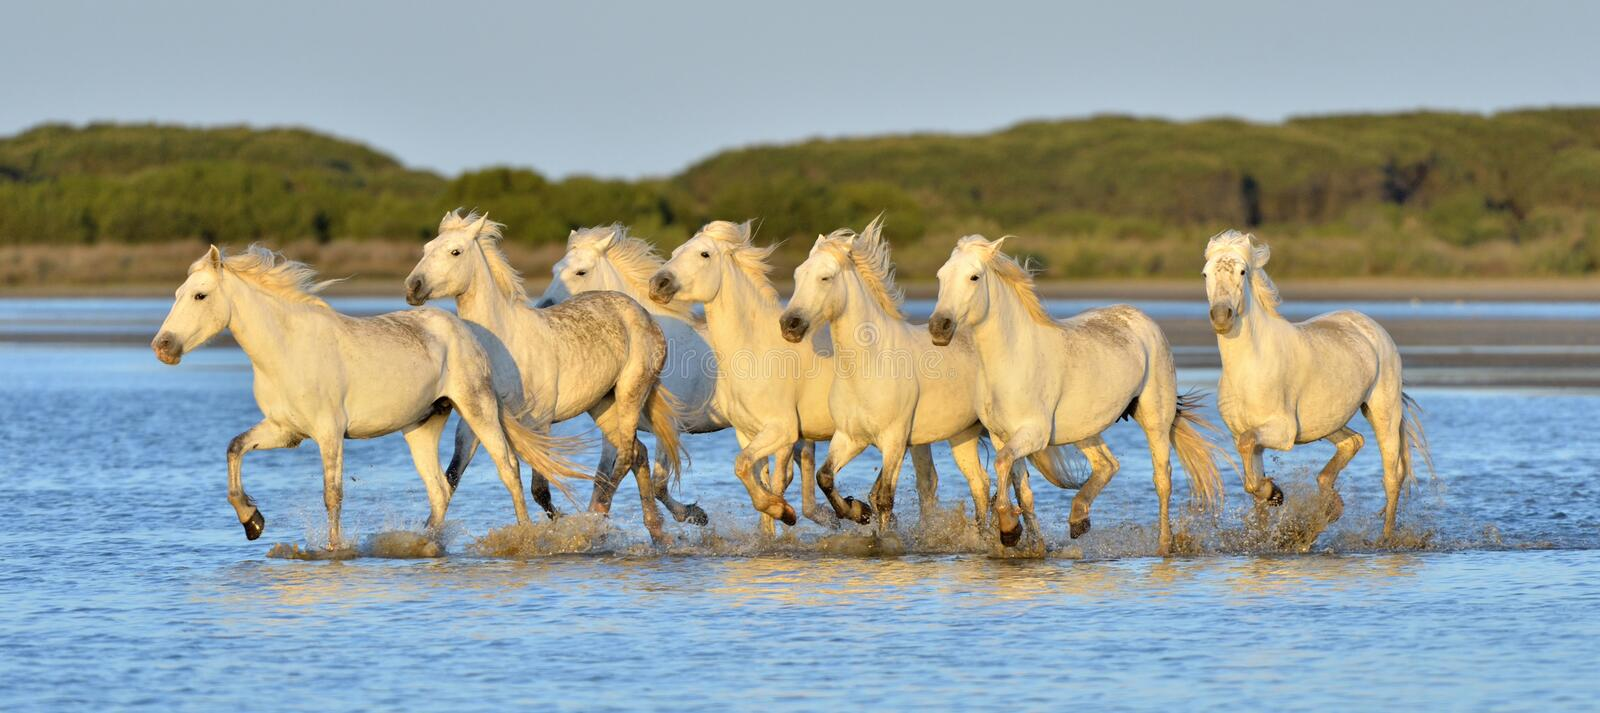 Herd of White Camargue Horses running on the water stock images